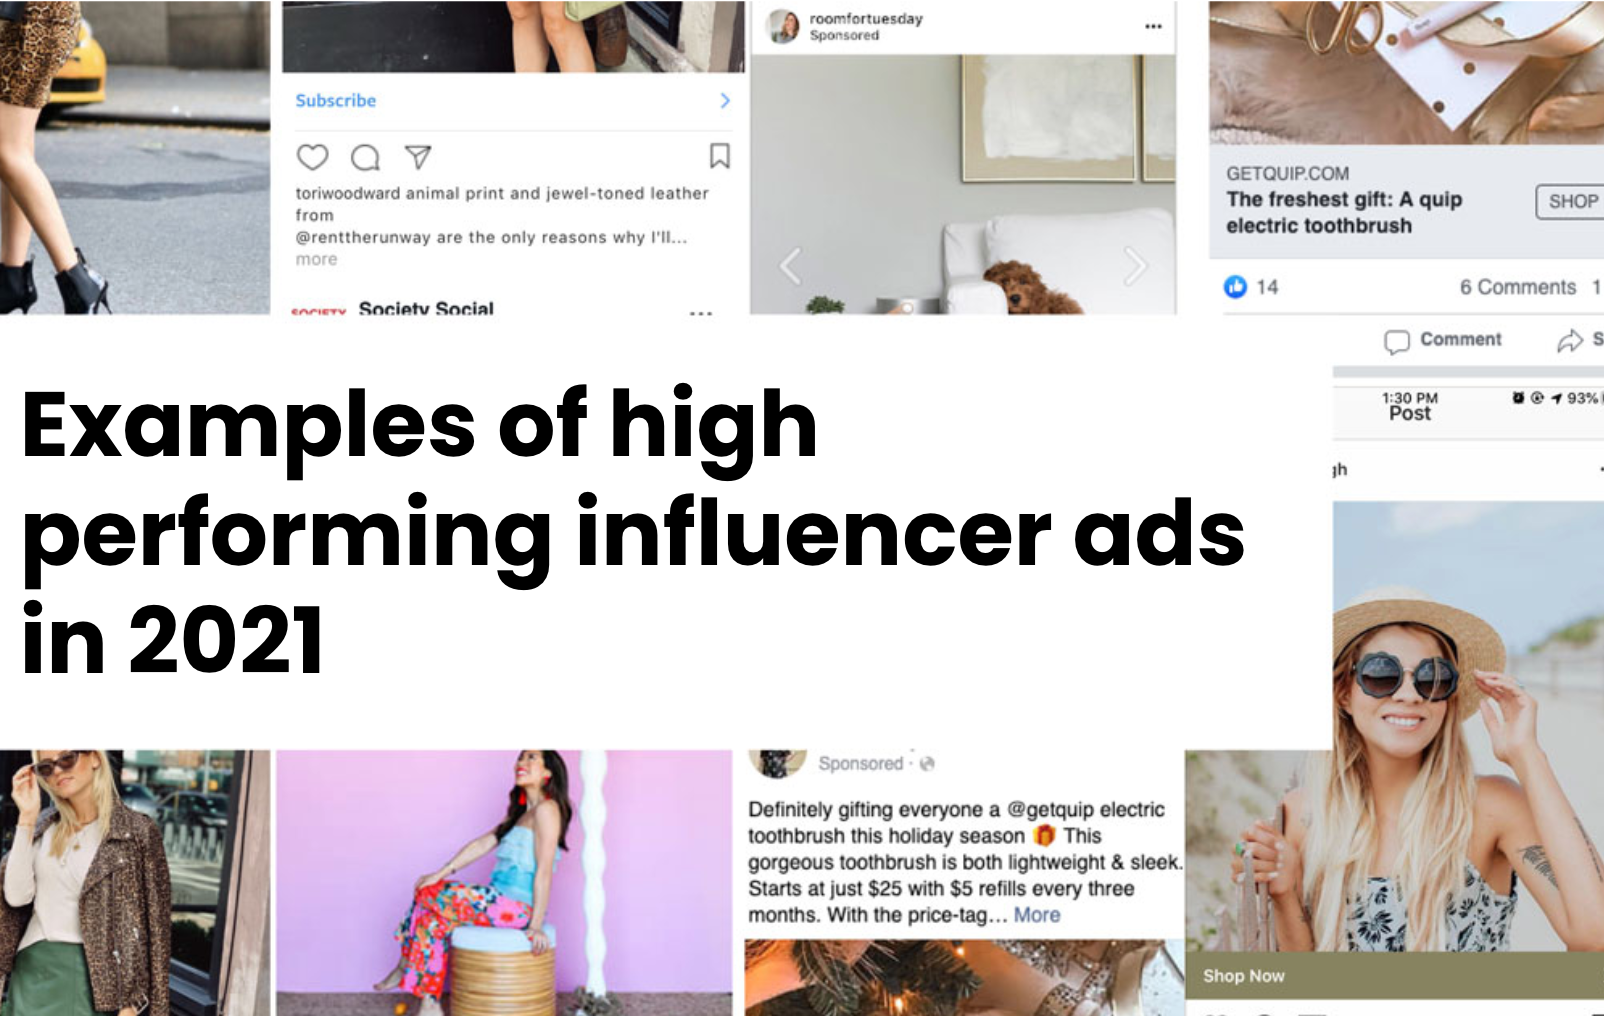 What high performing influencer ads look like in 2020 and why they were successful.